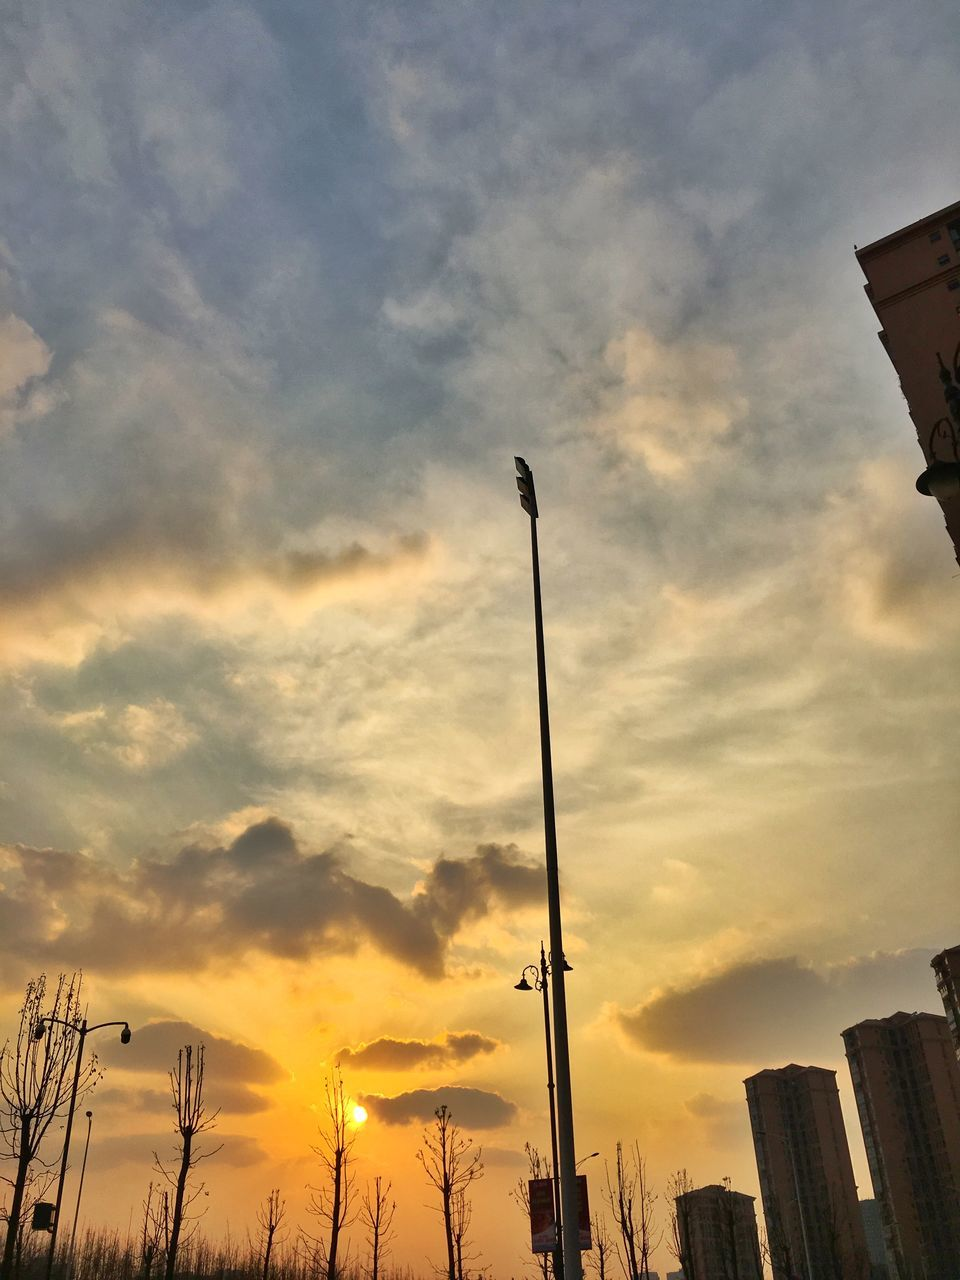 Low Angle View Of Silhouette Pole Against Cloudy Sky During Sunset